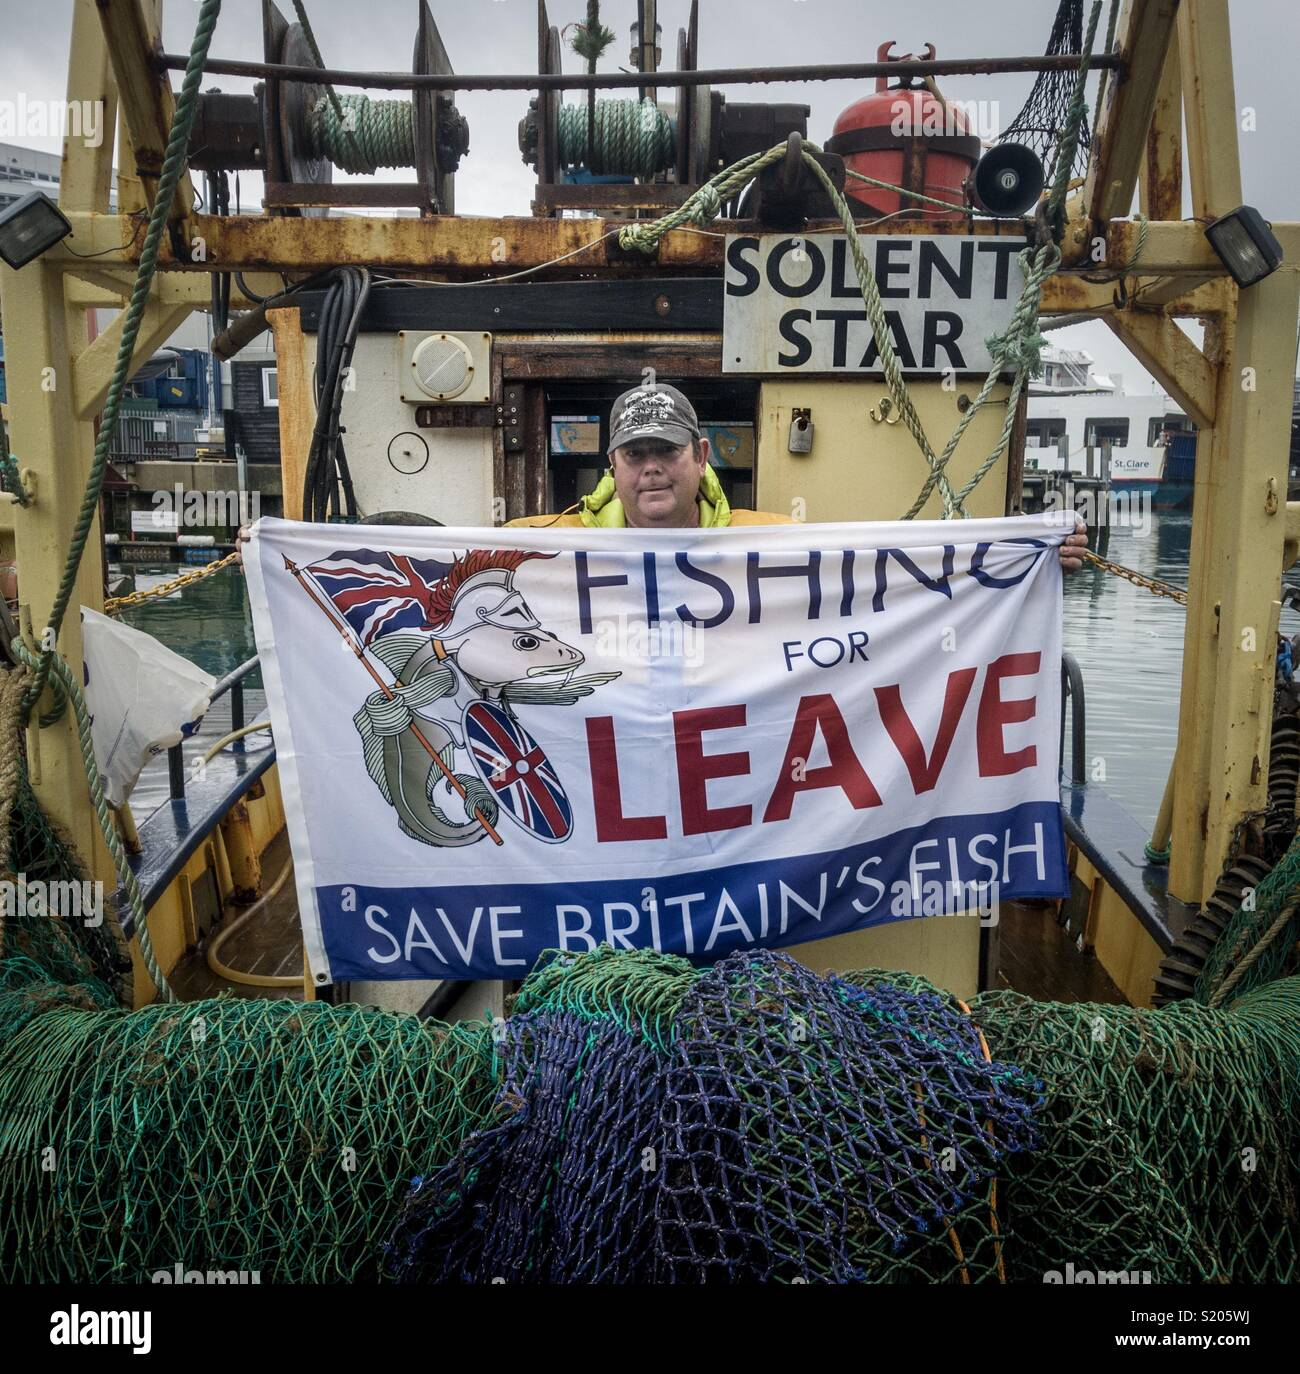 Portsmouth Fisherman protesting the Brexit deal which they believe will severely threaten their livelihoods - Stock Image